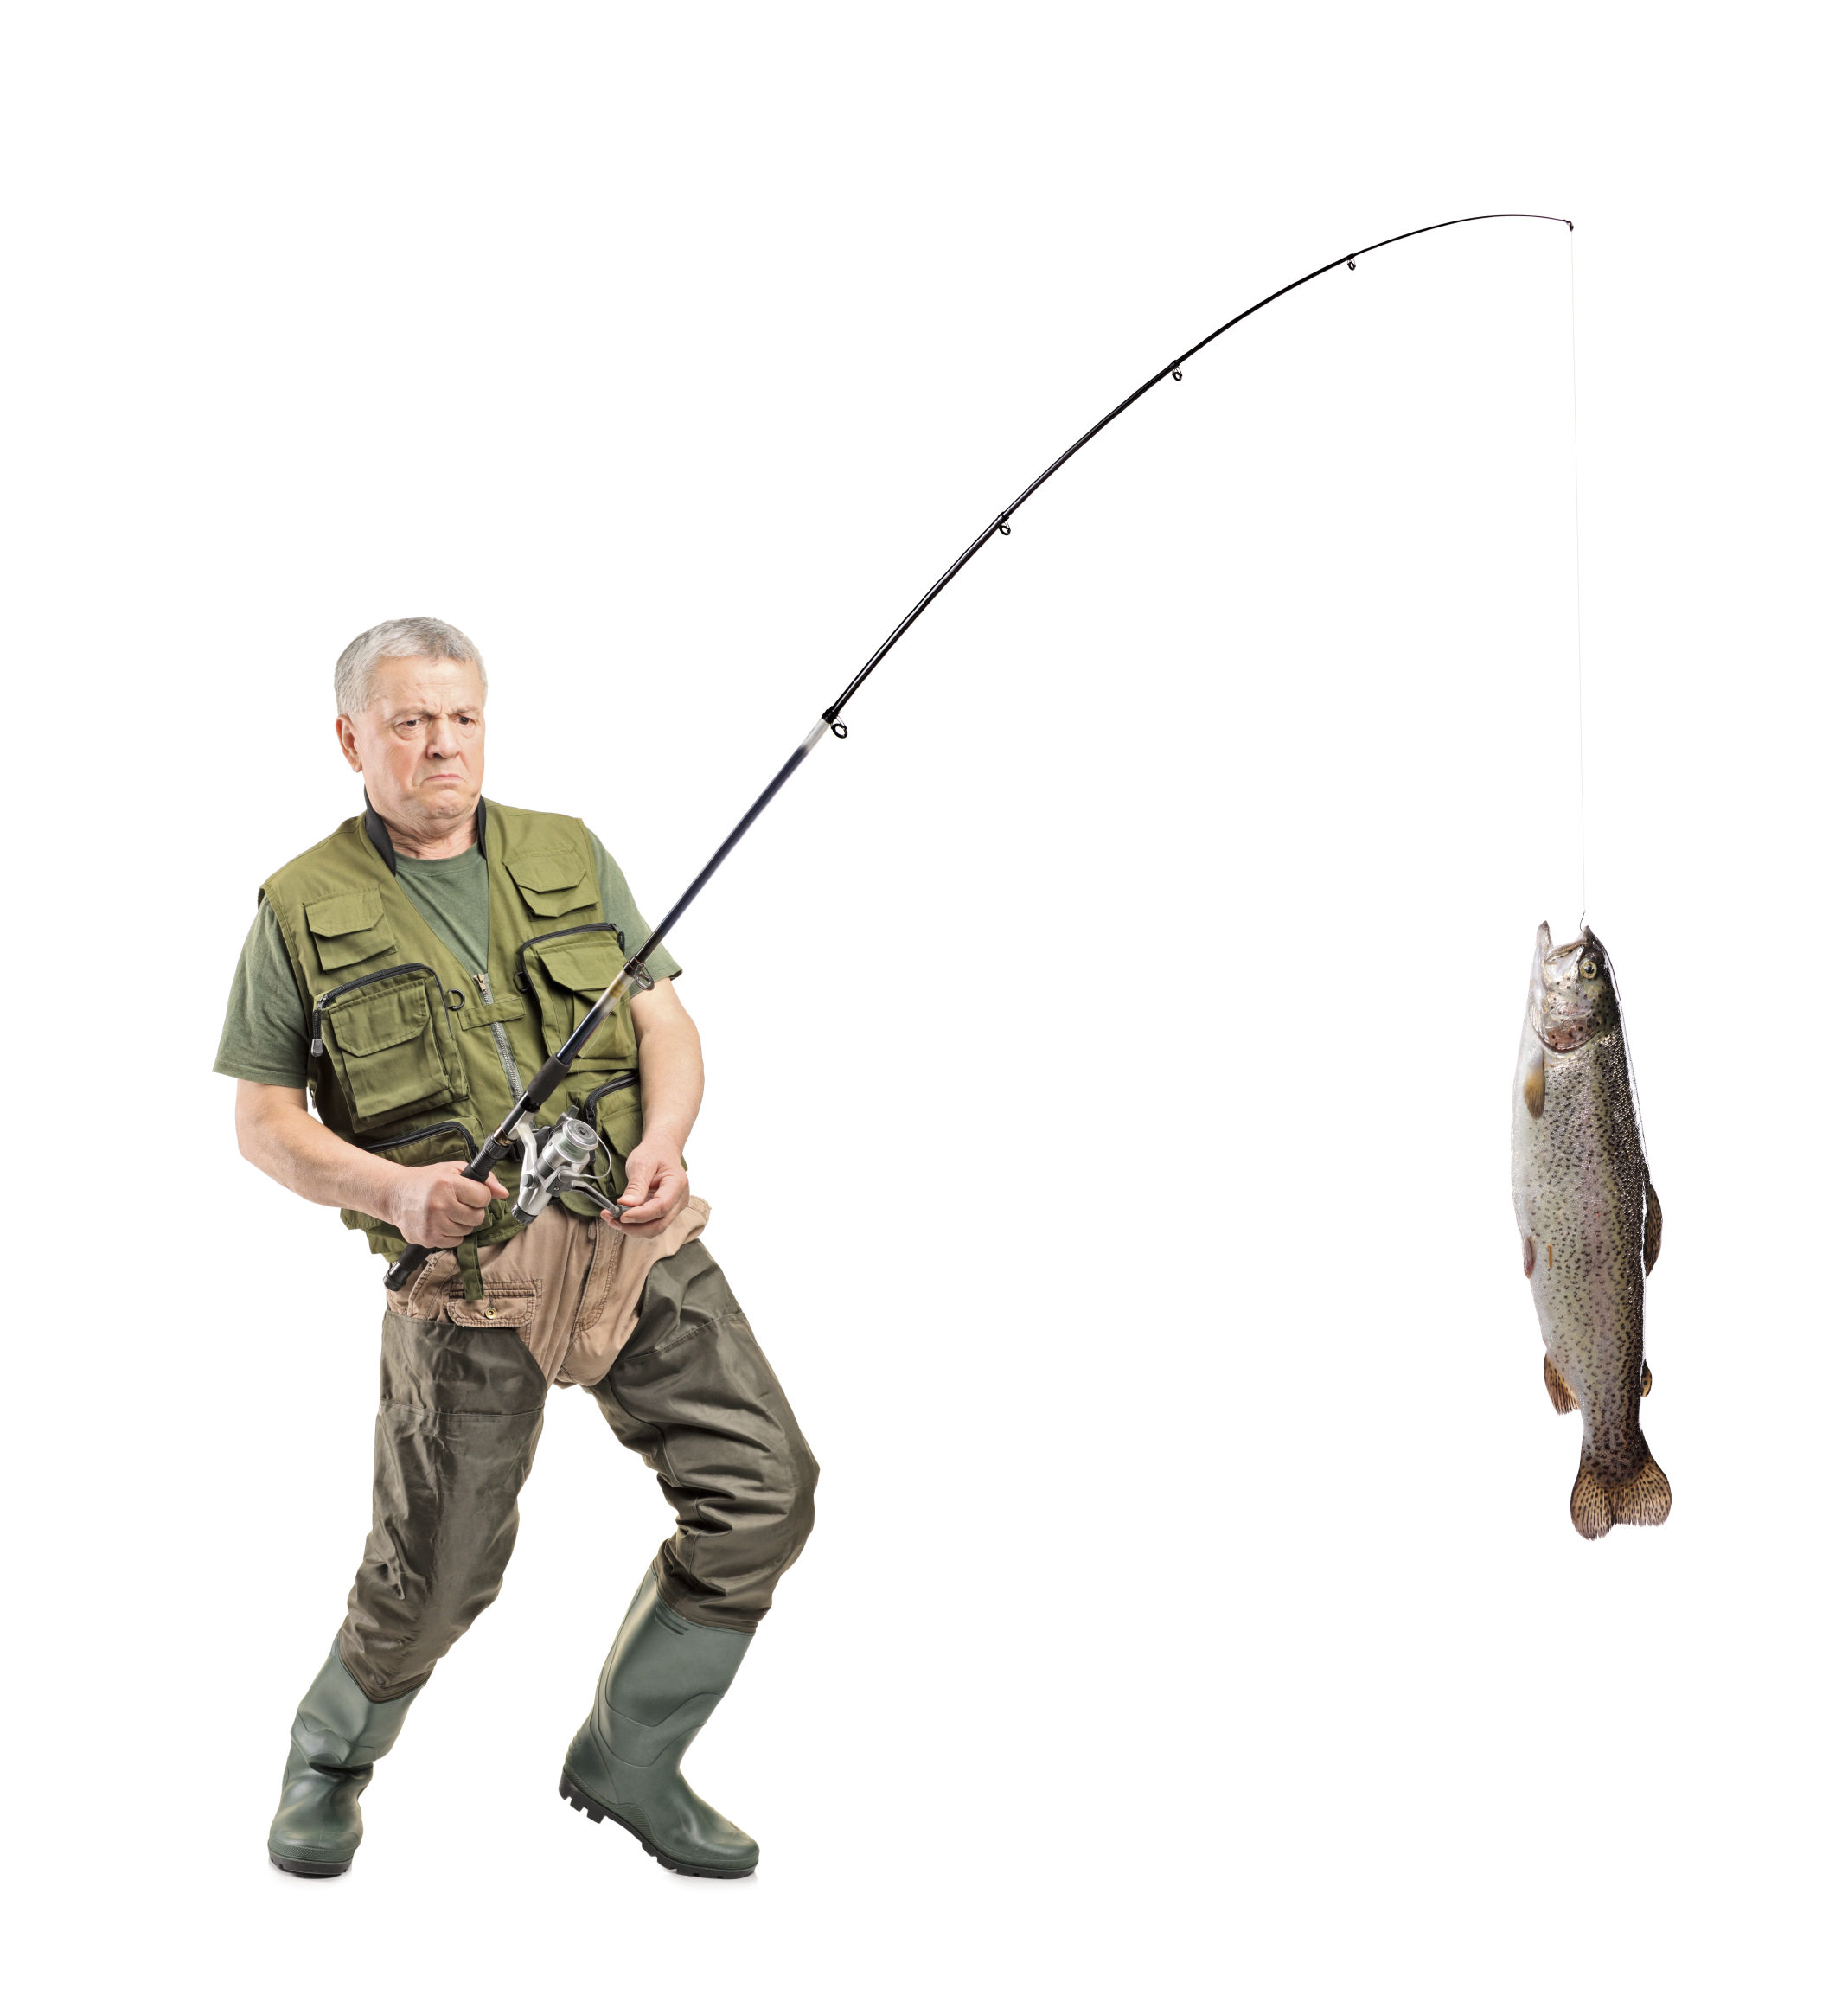 Fishing for the best offer on your insurance agency